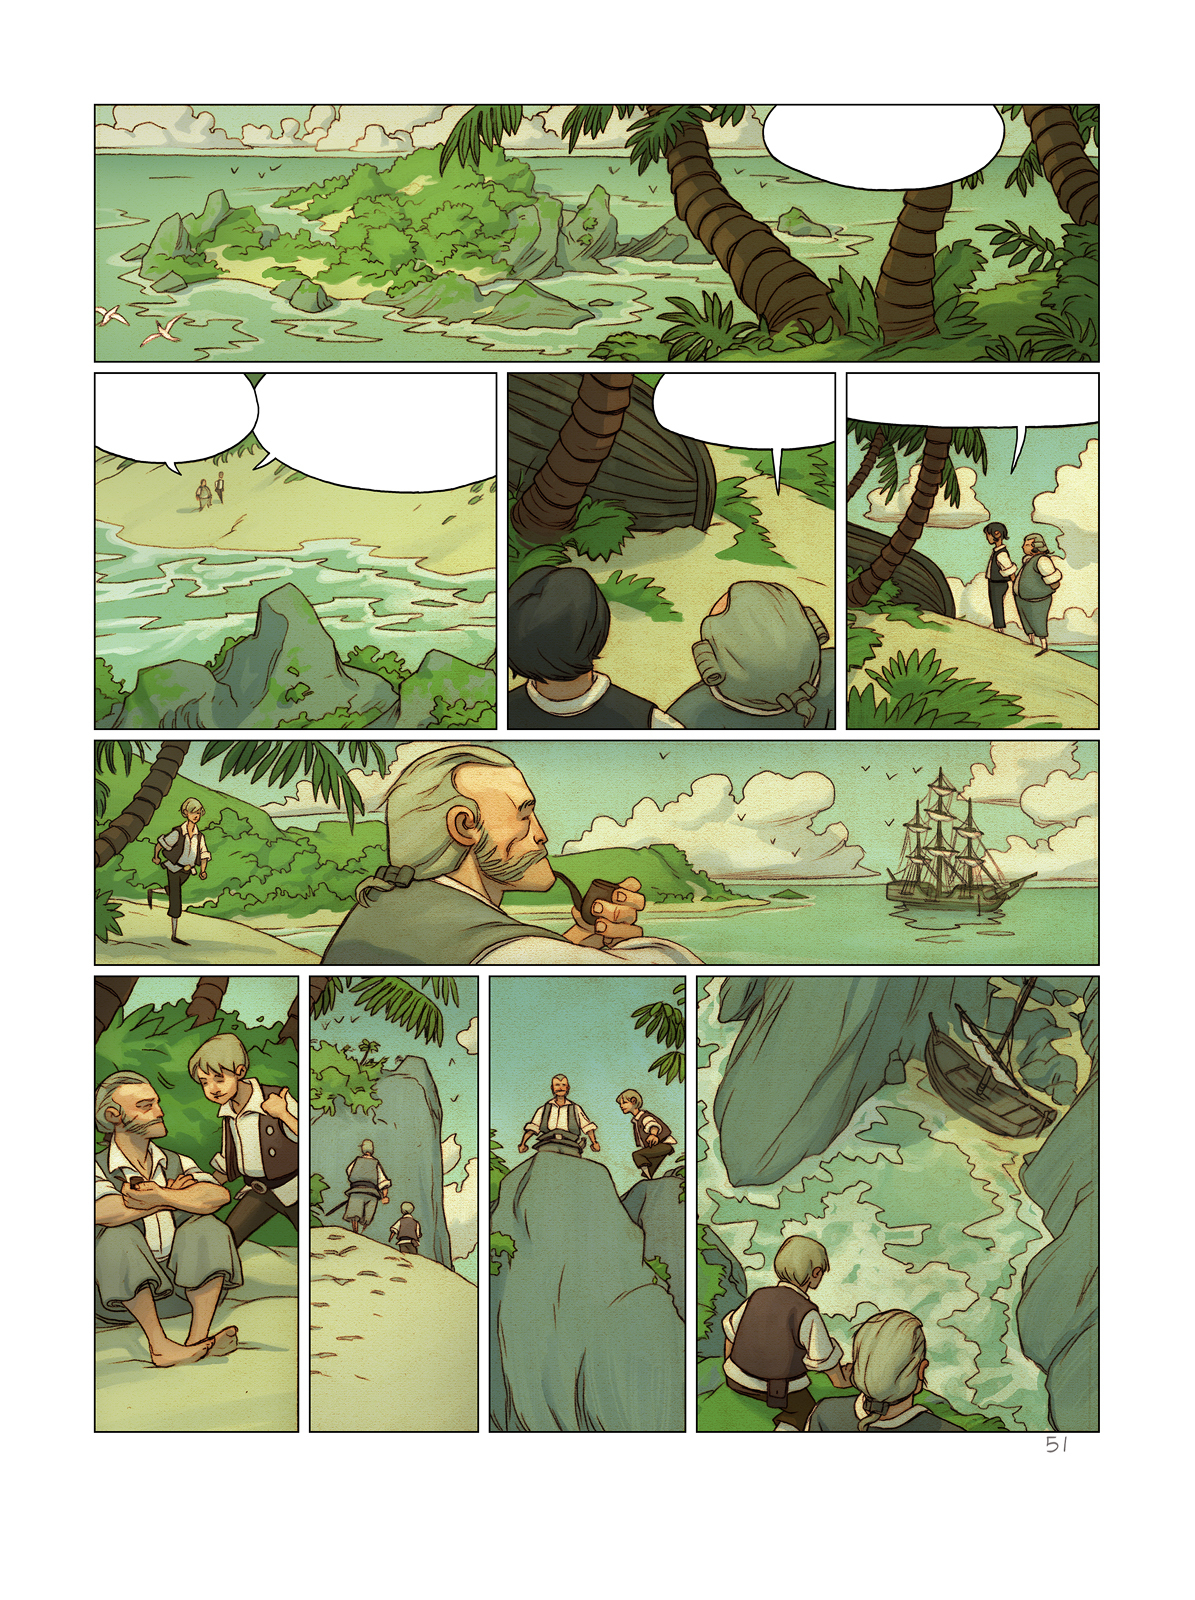 7pirates_page-51-color.jpg